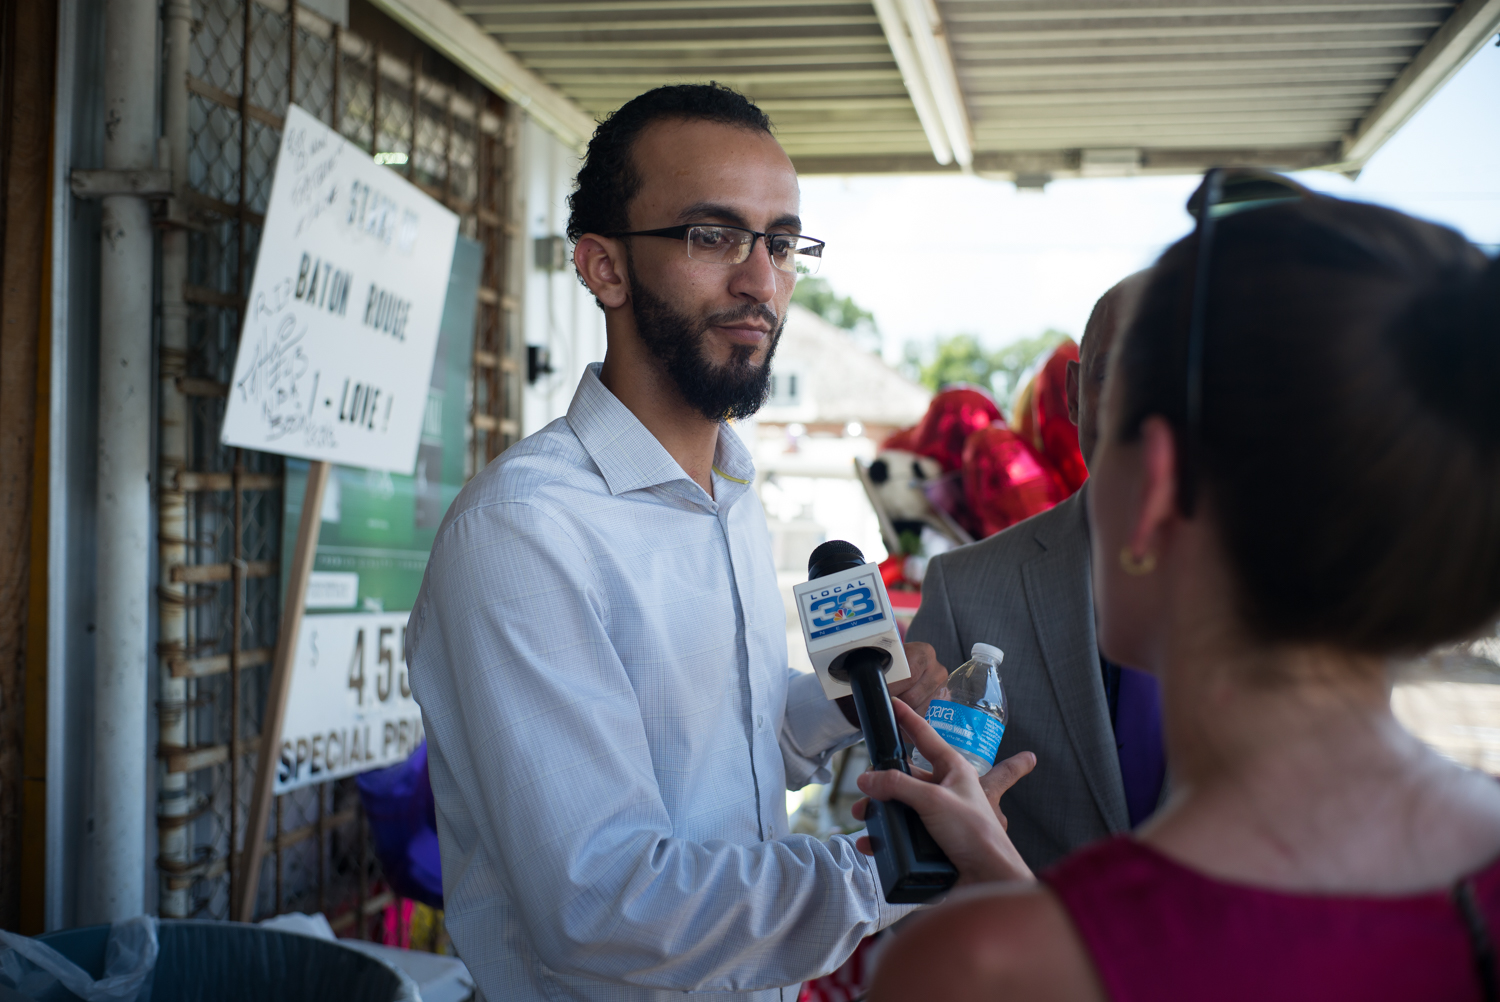 Owner of the Triple S Food Mart Abdullah Muflahi speaks to the media regarding the shooting death of Alton Sterling by police outside his store. An attorney representing Muflahi stated that police had confiscated the stores surveillance equipment without notification or a warrant.